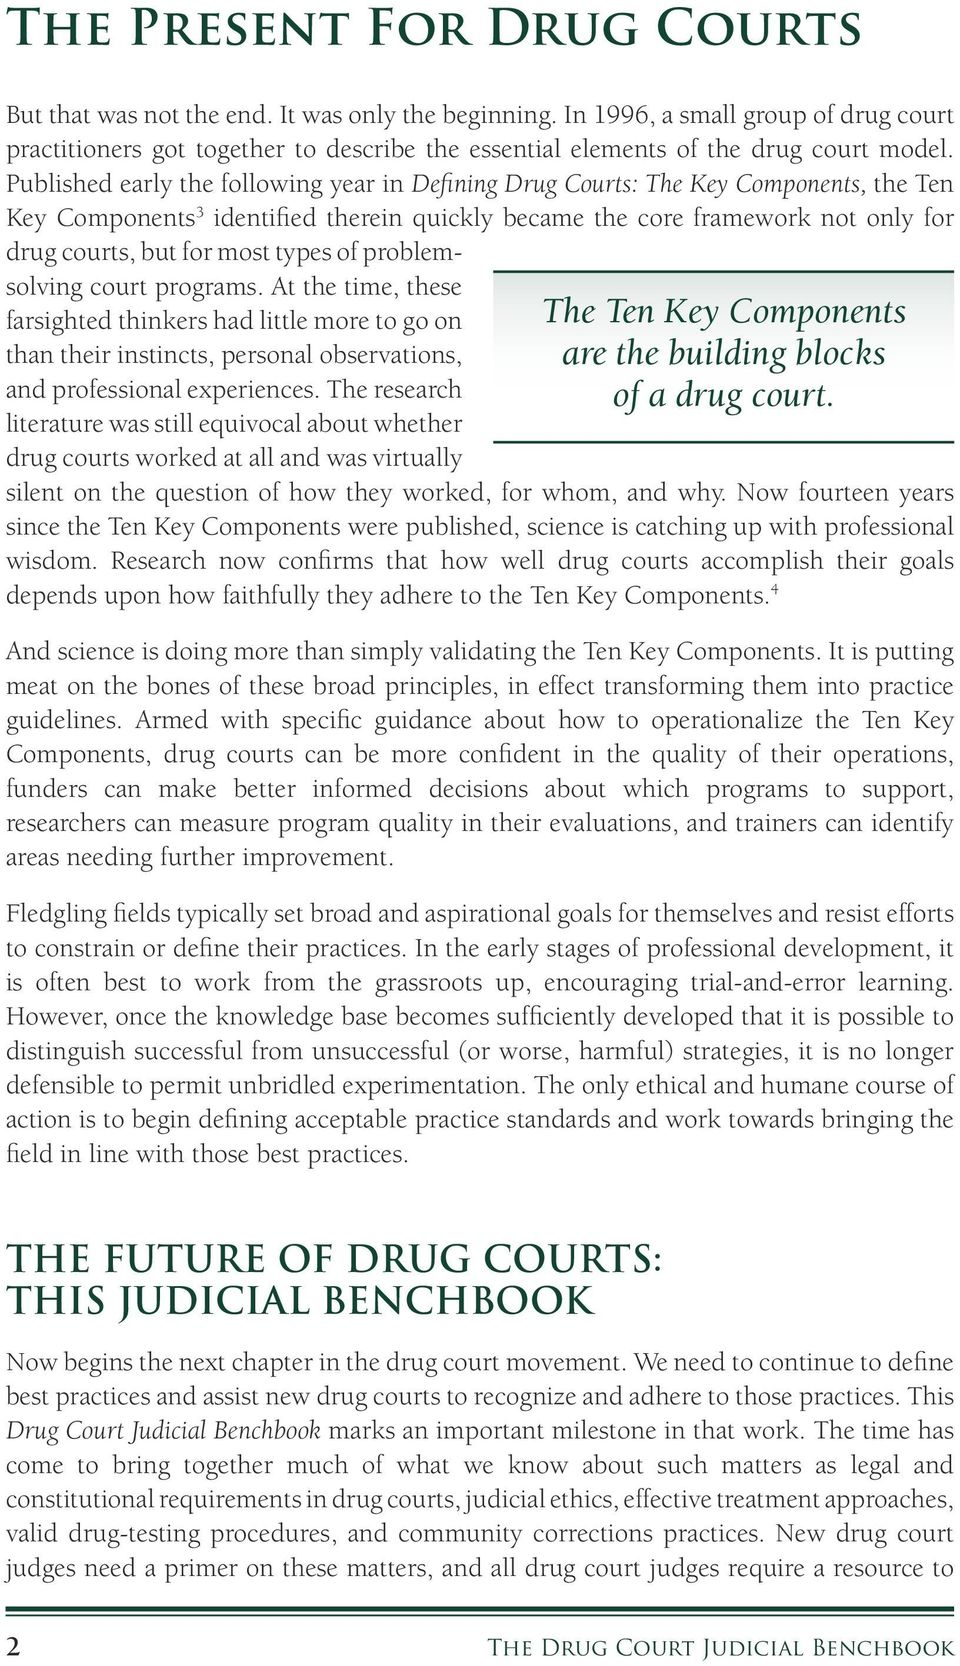 Published early the following year in Defining Drug Courts: The Key Components, the Ten Key Components 3 identified therein quickly became the core framework not only for drug courts, but for most